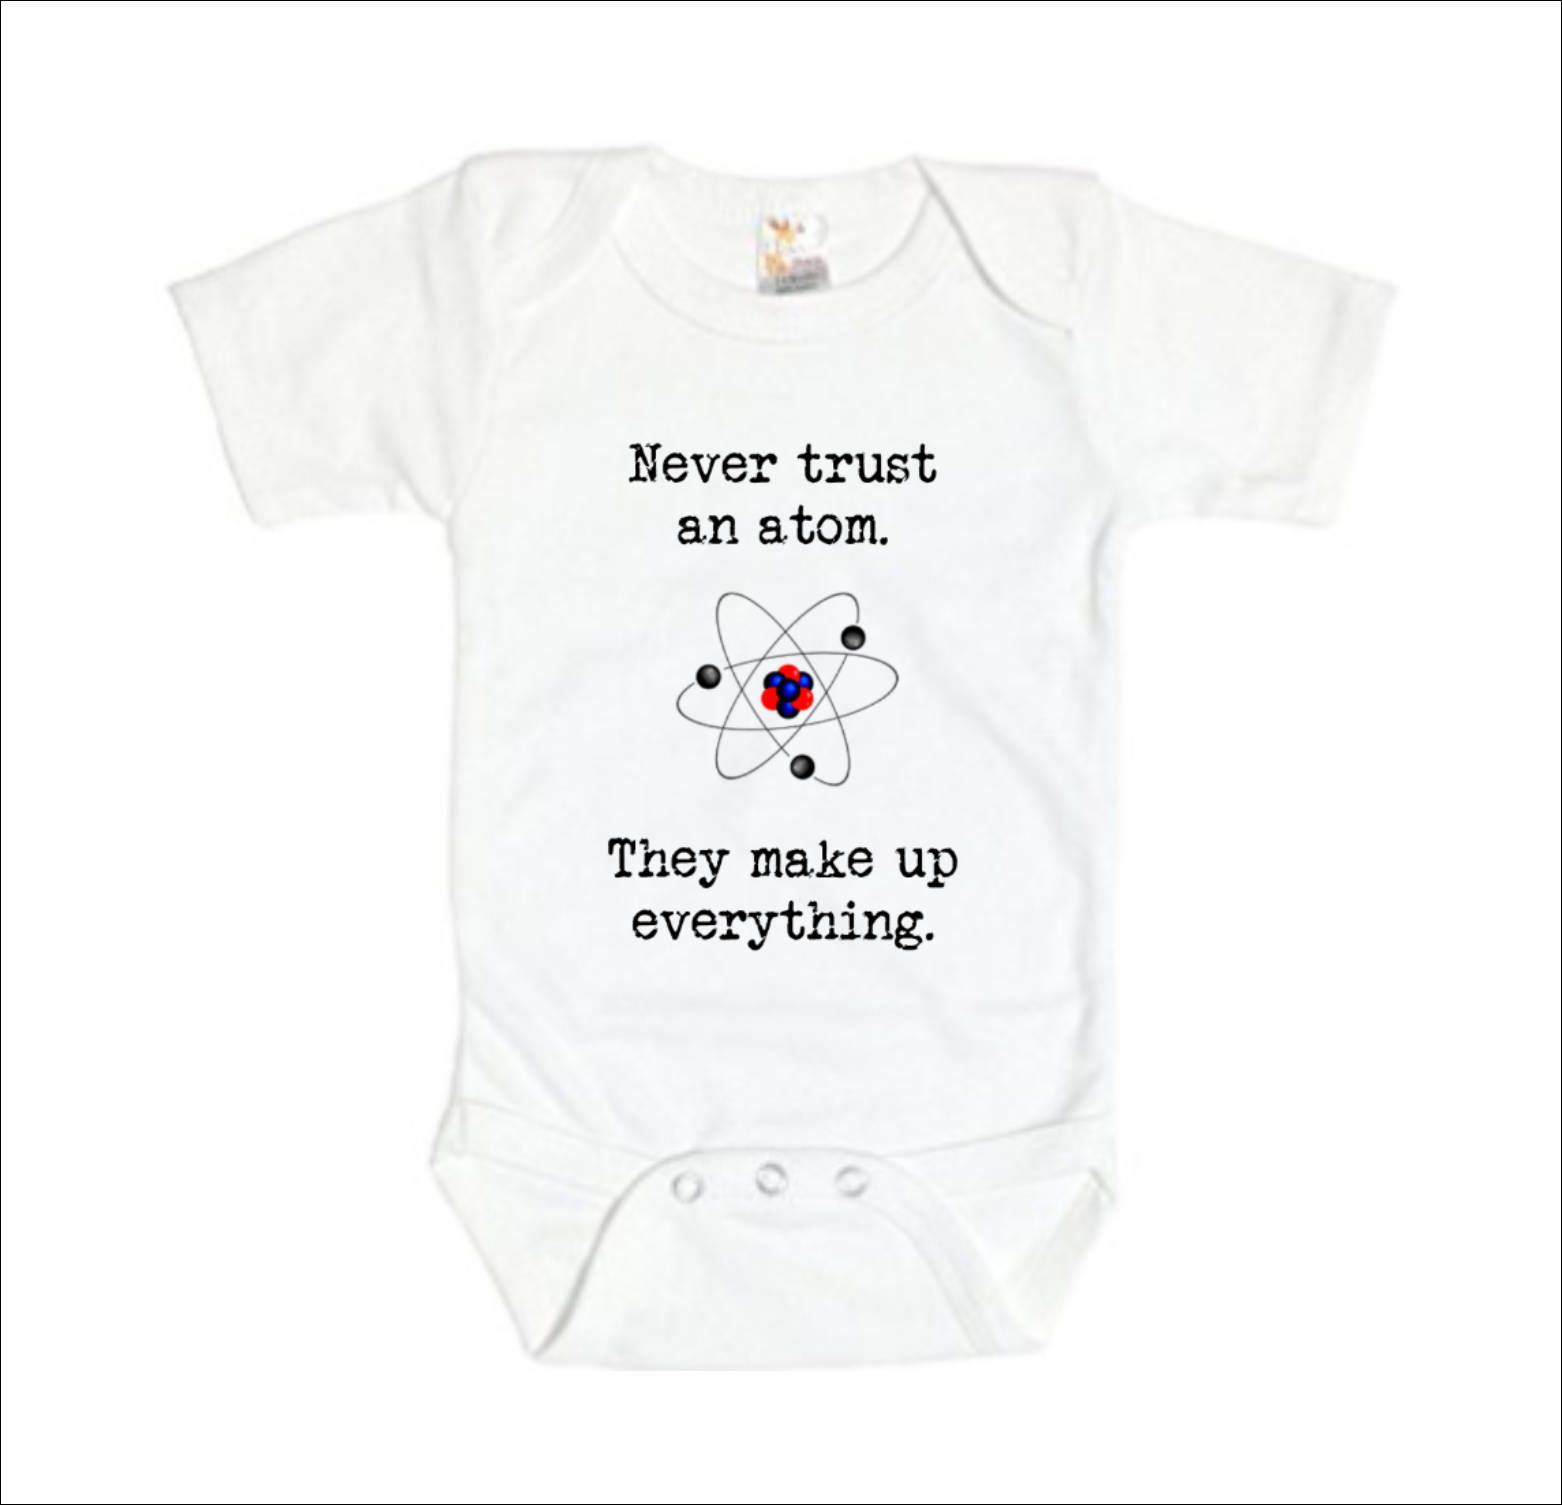 b970f42ca Science Baby Clothes, Chemistry Baby Clothes, Never Trust An Atom, They  Make Up Everything, Nerd Baby Girl Nerdy Baby Gift Geek Baby Clothes by ...